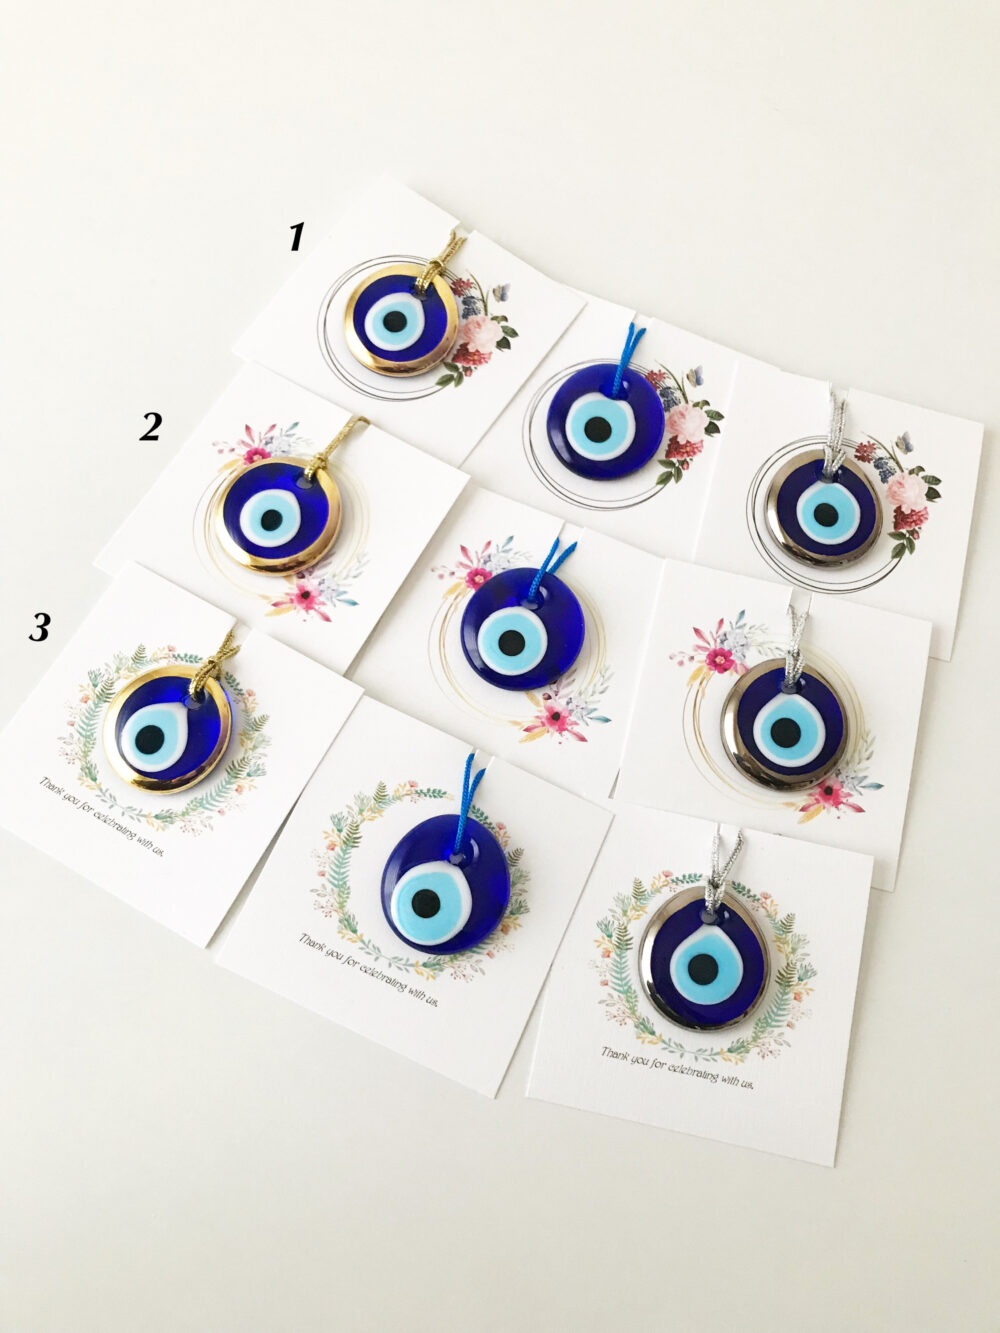 Evil Eye Wedding Favors, Personalized Favor, Greek Evil Bead, Card Designs, Unique Gifts, Gold Silver Blue